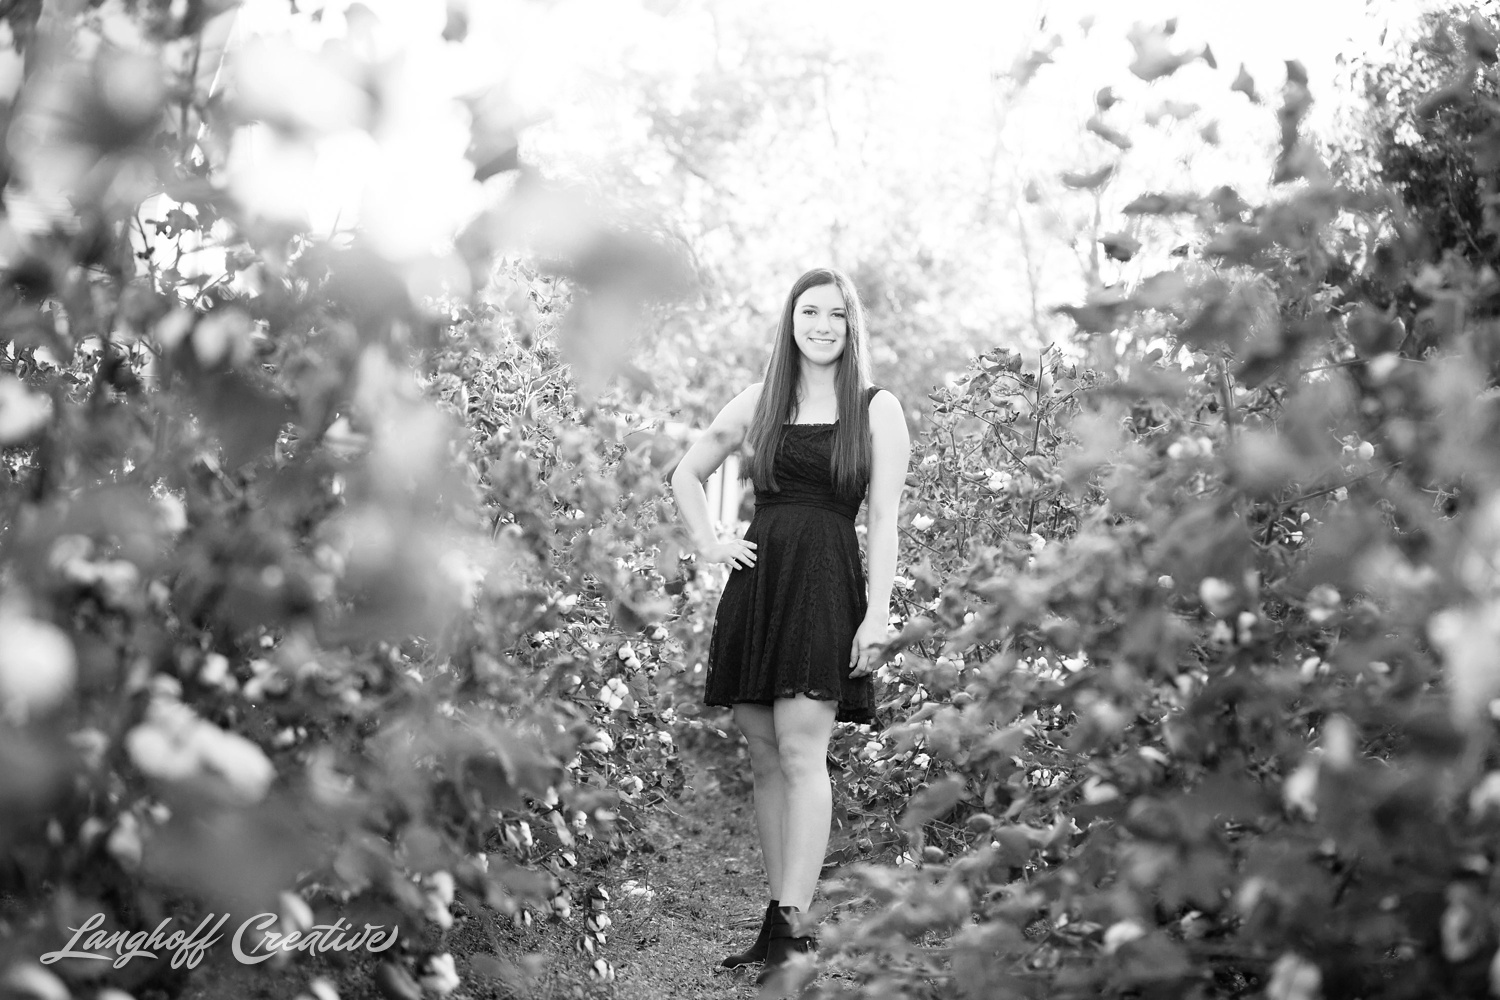 RaleighSeniorPortraits-SeniorSession-Classof2015-Senior2015-HighSchoolSeniorPhotography-LanghoffCreative-Alexa11-photo.jpg